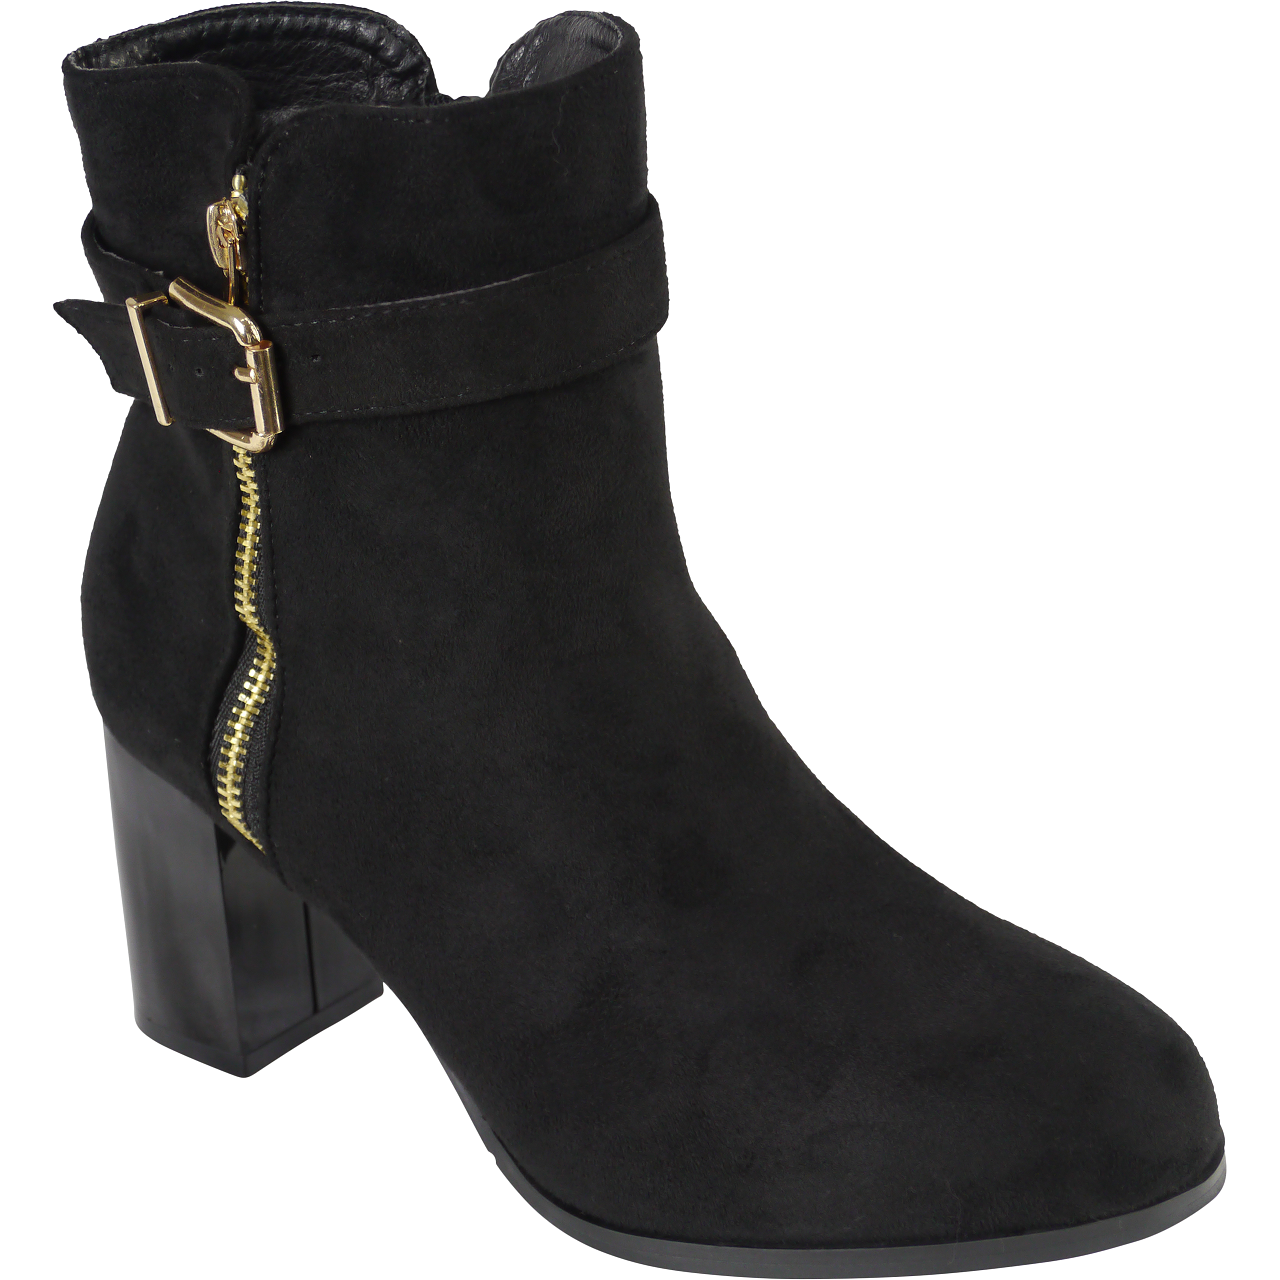 Womens Ladies Buckle Ankle Boots Side Zip Block Heeled Shoes Winter Faux Suede